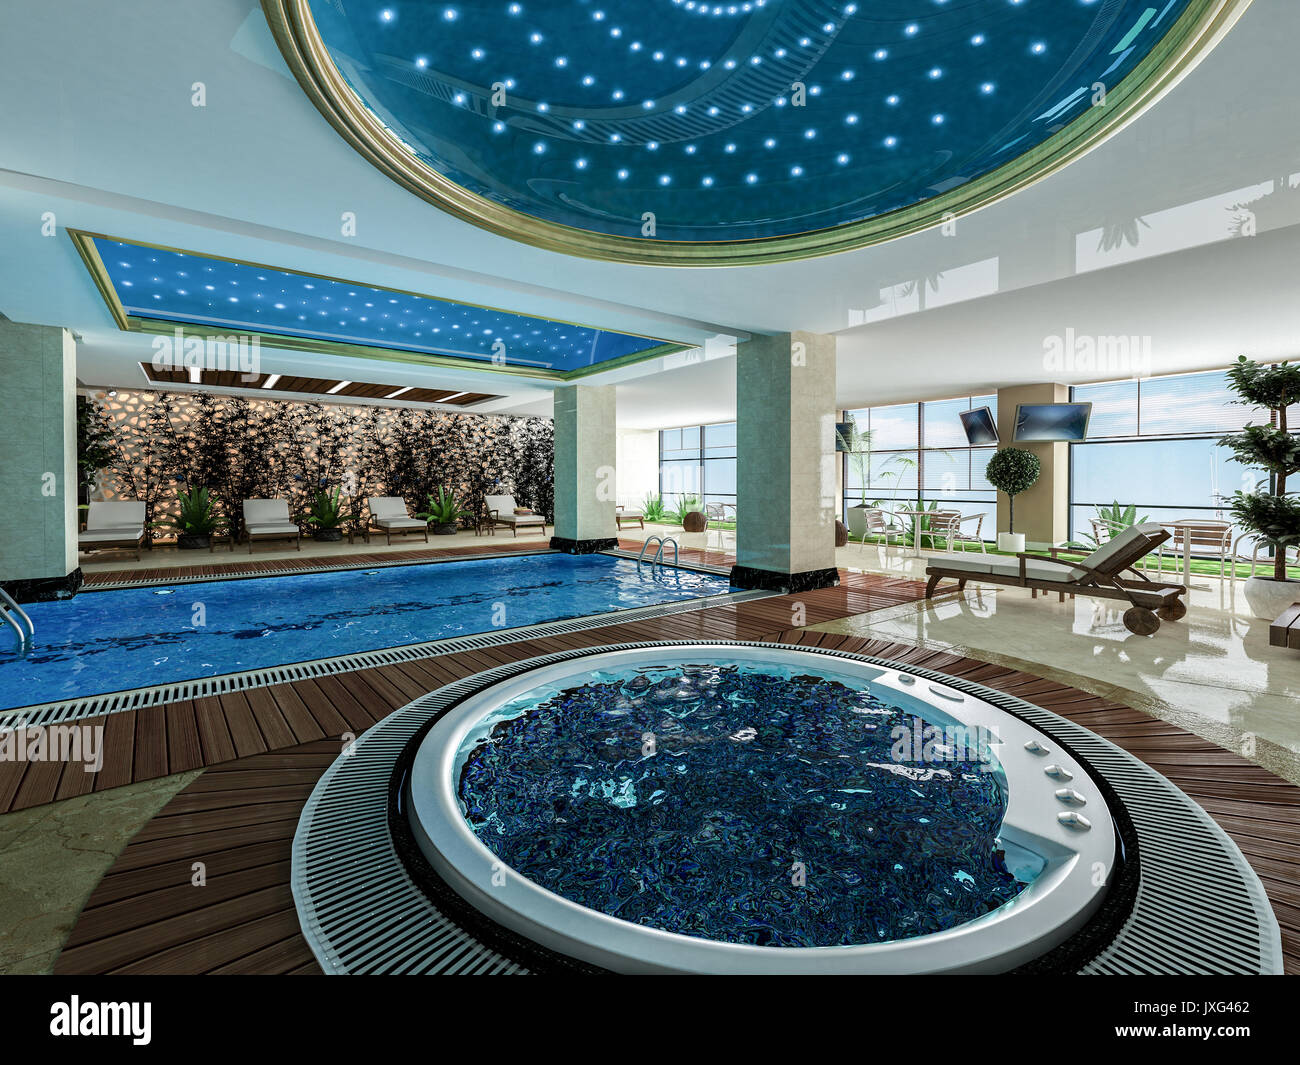 Indoor Swimming Pool Jacuzzi And Wooden Deck Relax Design Idea - Indoor-swimming-pool-design-ideas